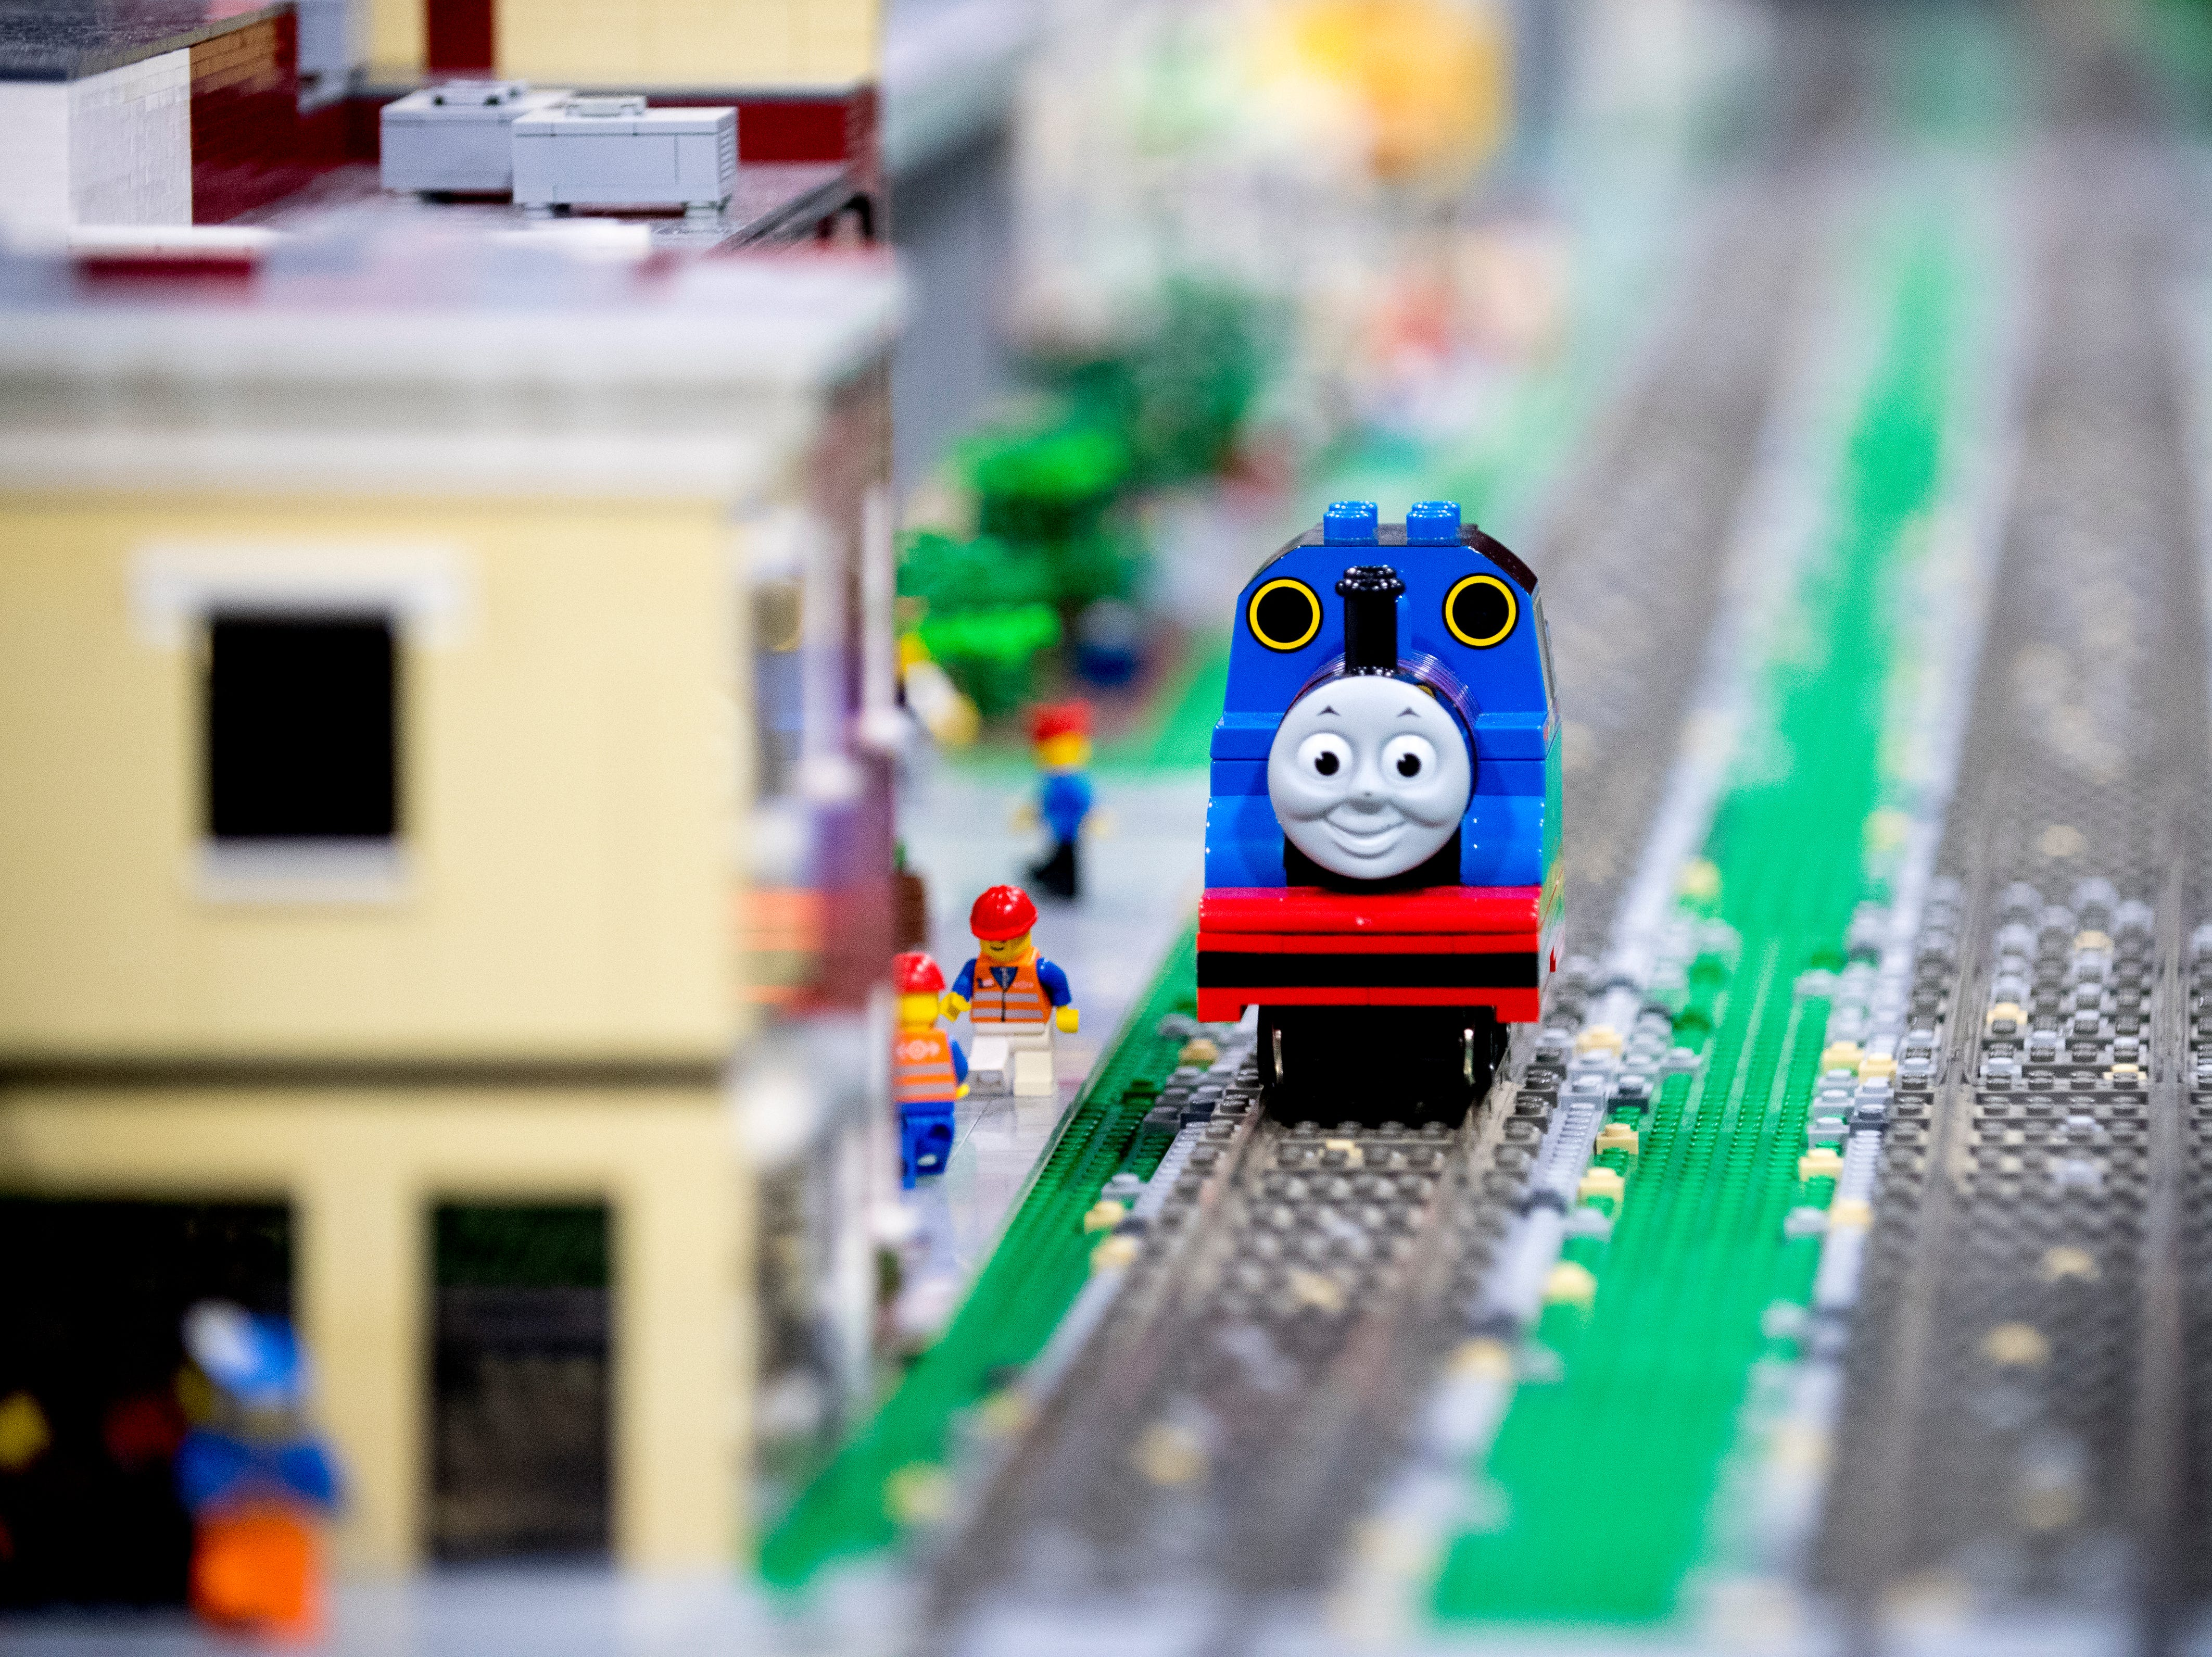 Thomas the Tank Engine rolls down a track at the BrickUniverse Knoxville LEGO Fan Expo in the Knoxville Convention Center in Knoxville, Tennessee on Saturday, August 25, 2018. Life-sized LEGO displays, over 40 world landmarks build to-scale from LEGO as well as castles, trains, and cities and other creations were on display.